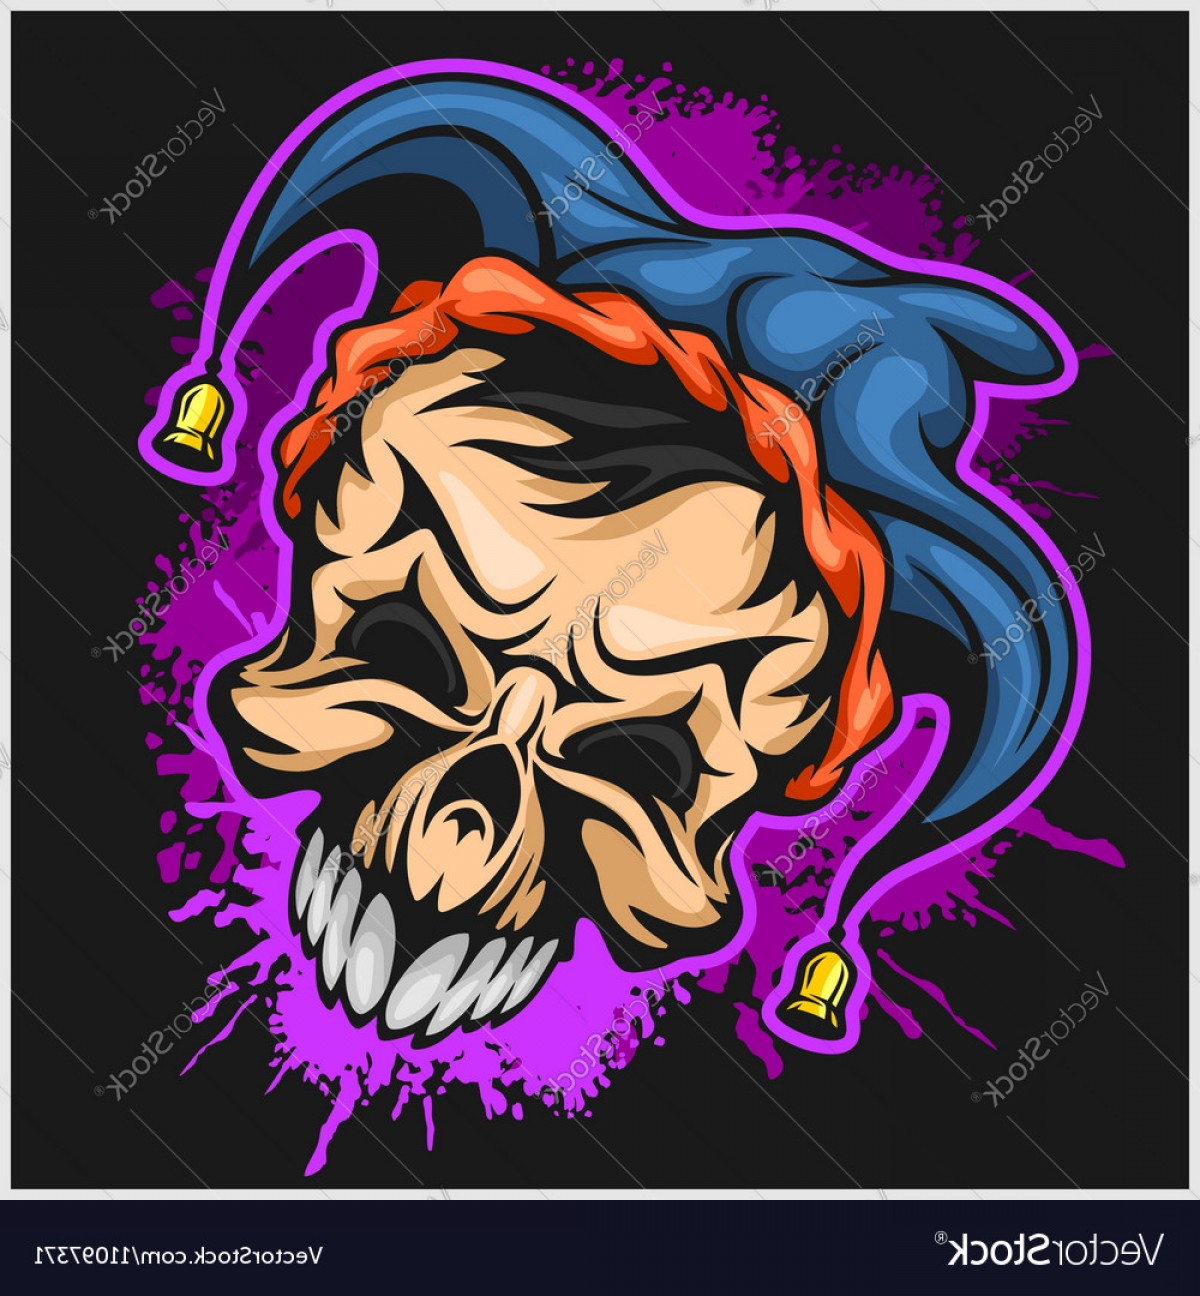 Joker Vector Graphics: Evil Scary Clown Halloween Monster Joker Vector